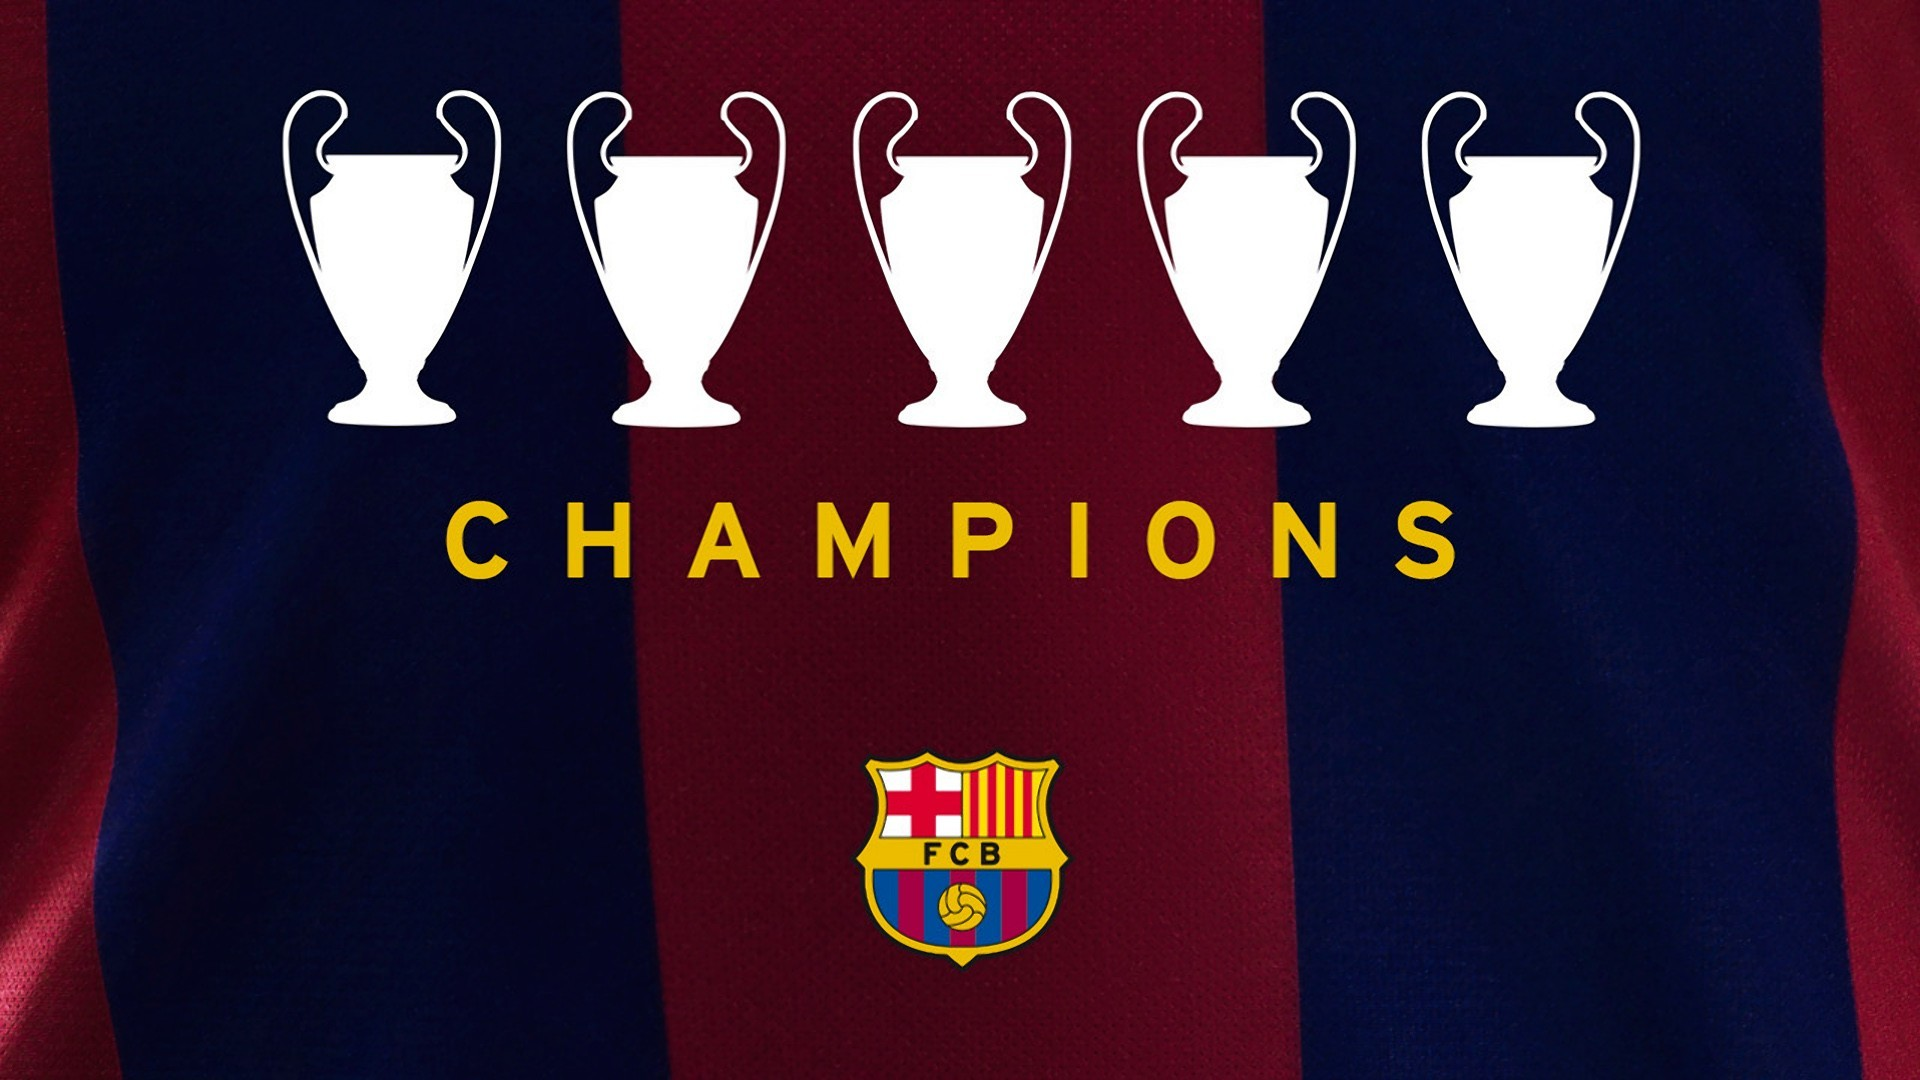 Download Barcelona Backgrounds Free.